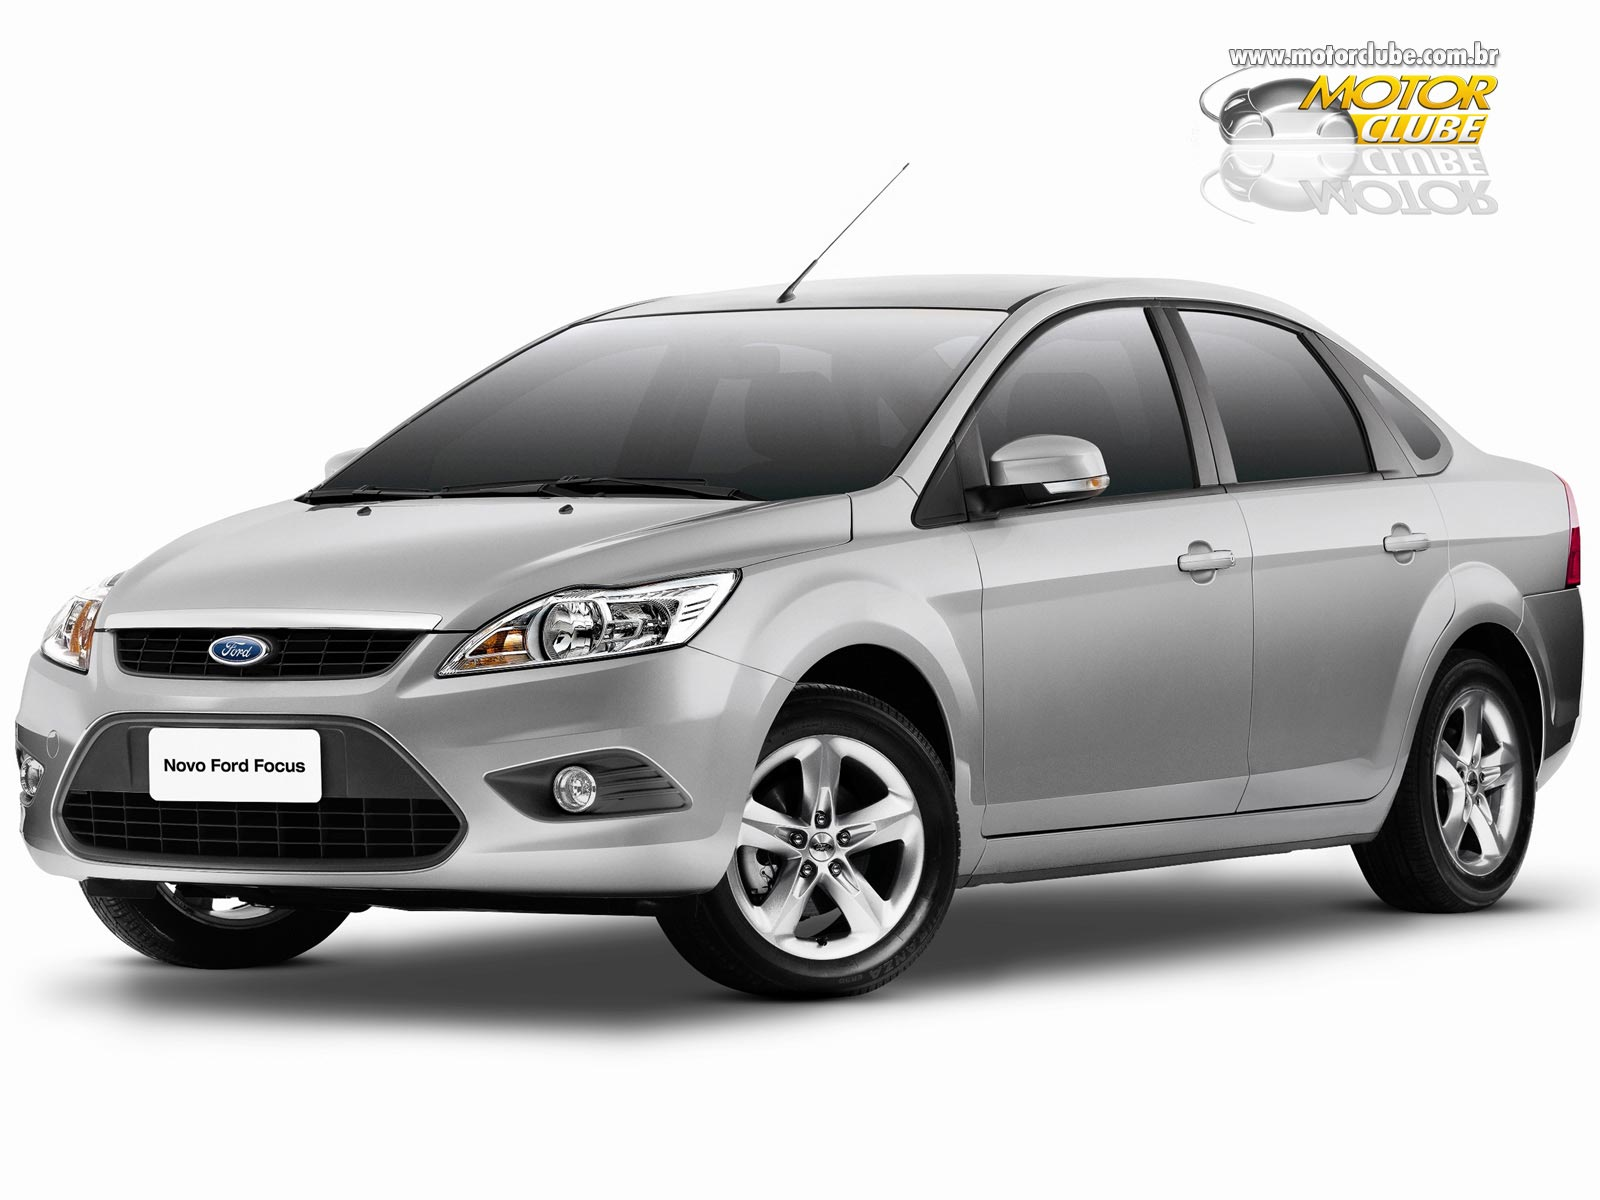 Ford Focus 2.0 2010 photo - 1